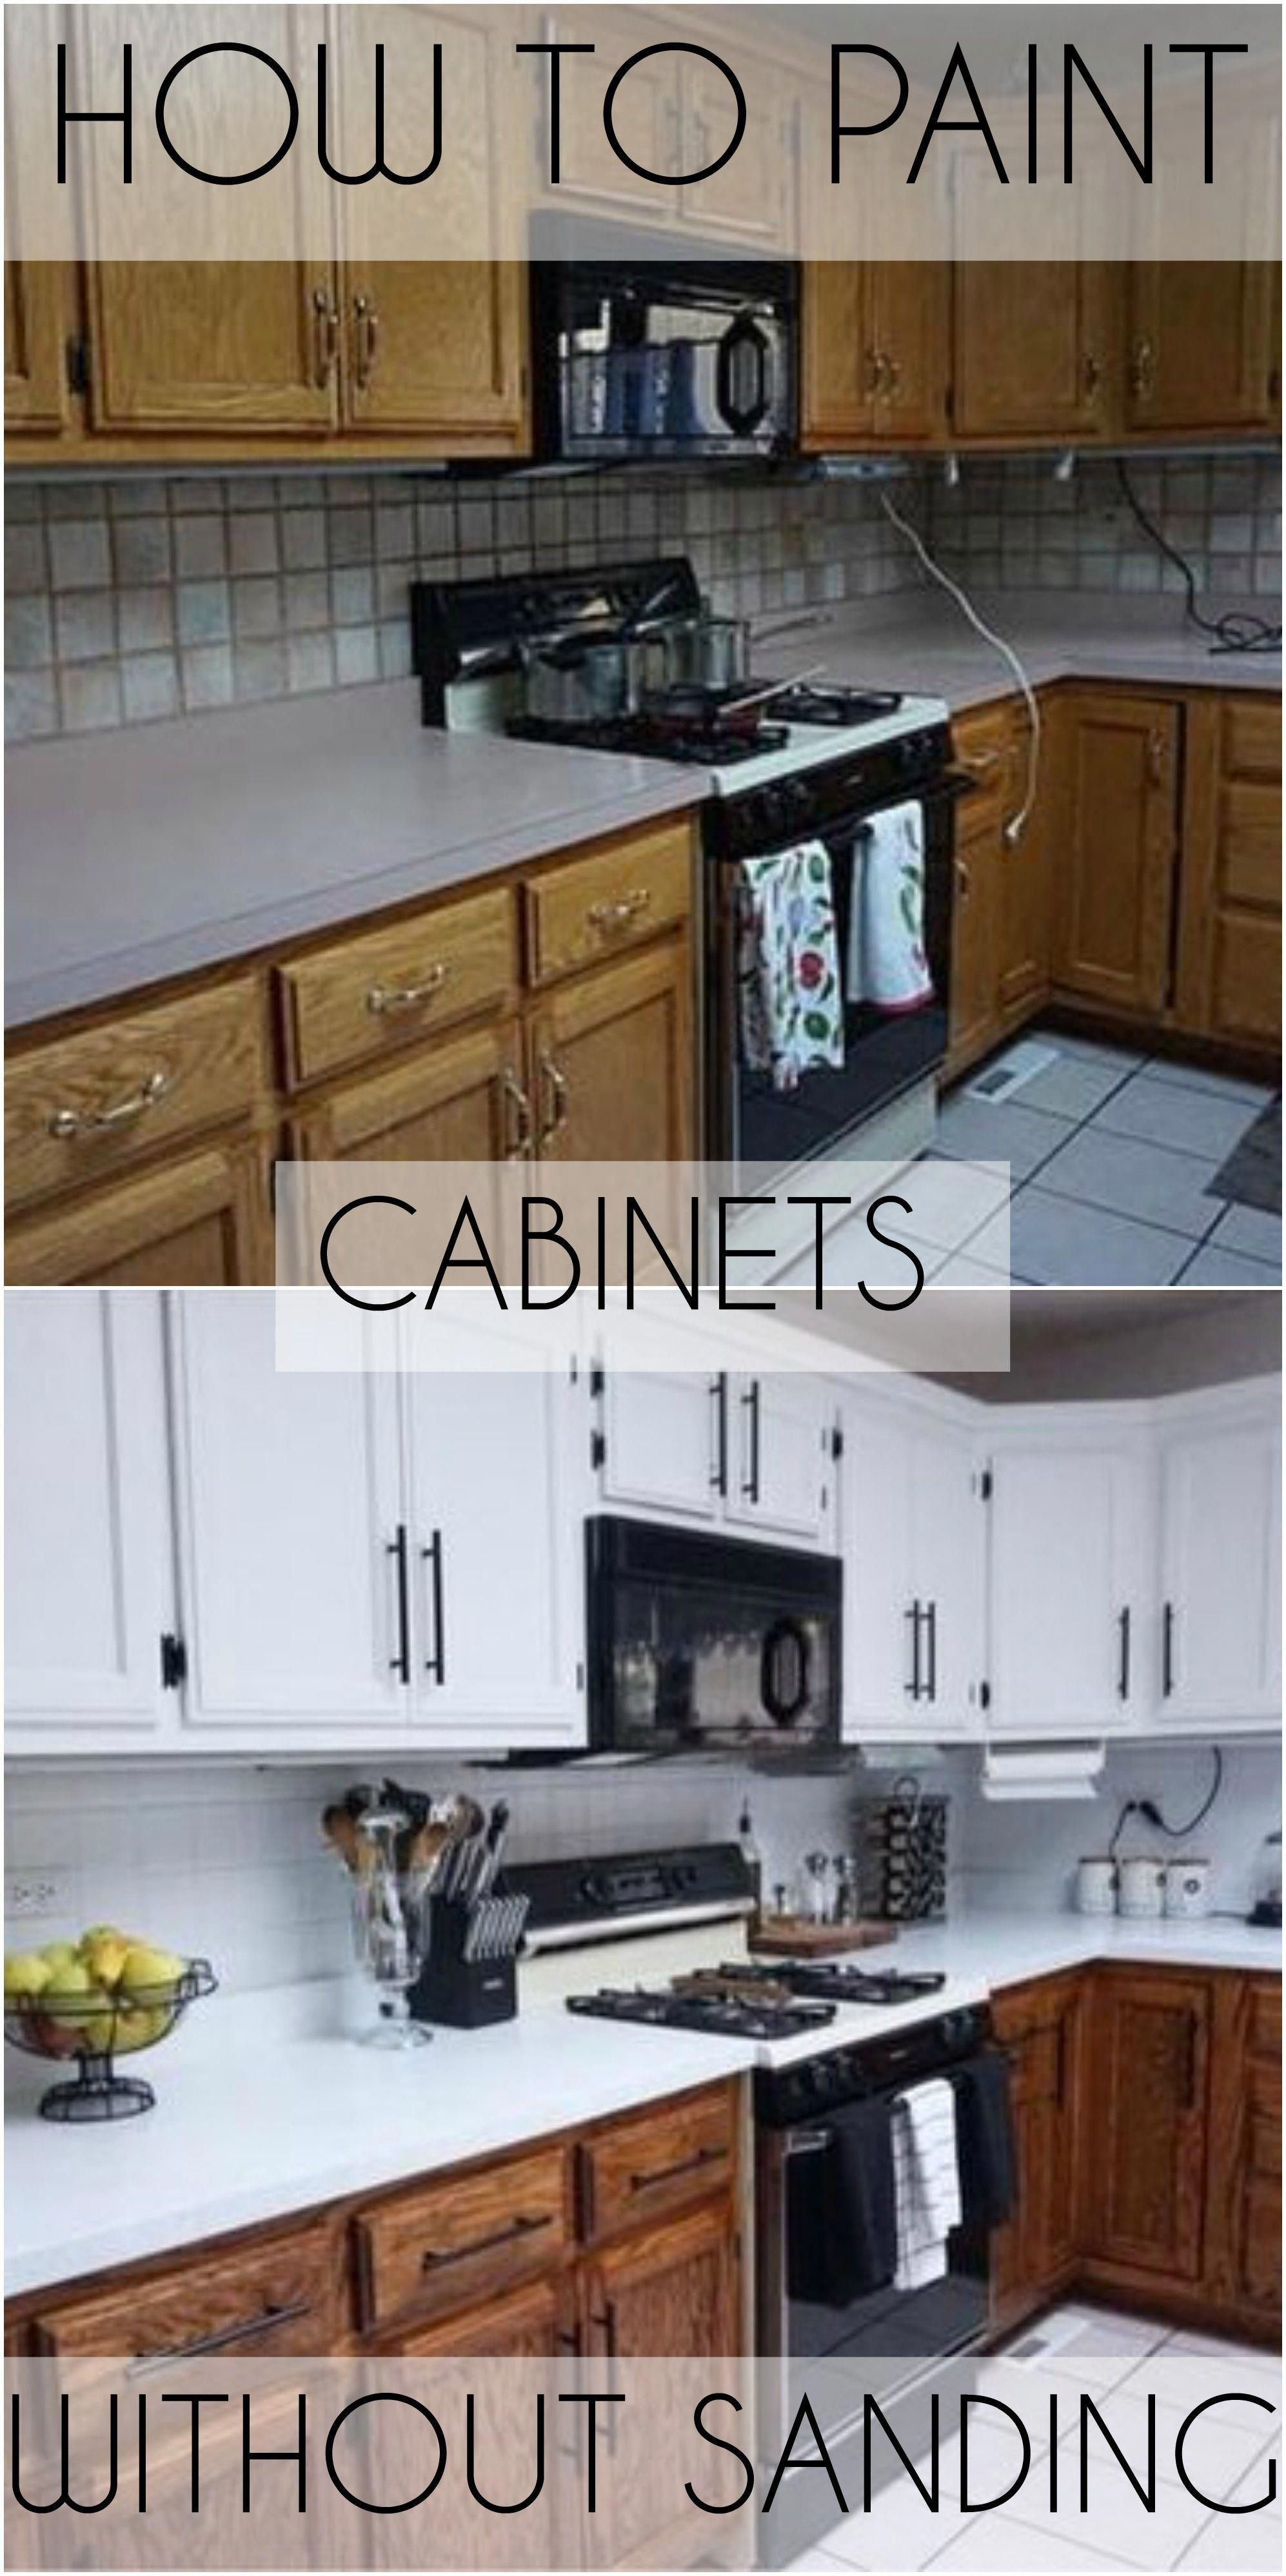 34 Inventive Kitchen Countertop Organizing Ideas To Keep Your Space Neat In 2020 Painting Kitchen Cabinets White